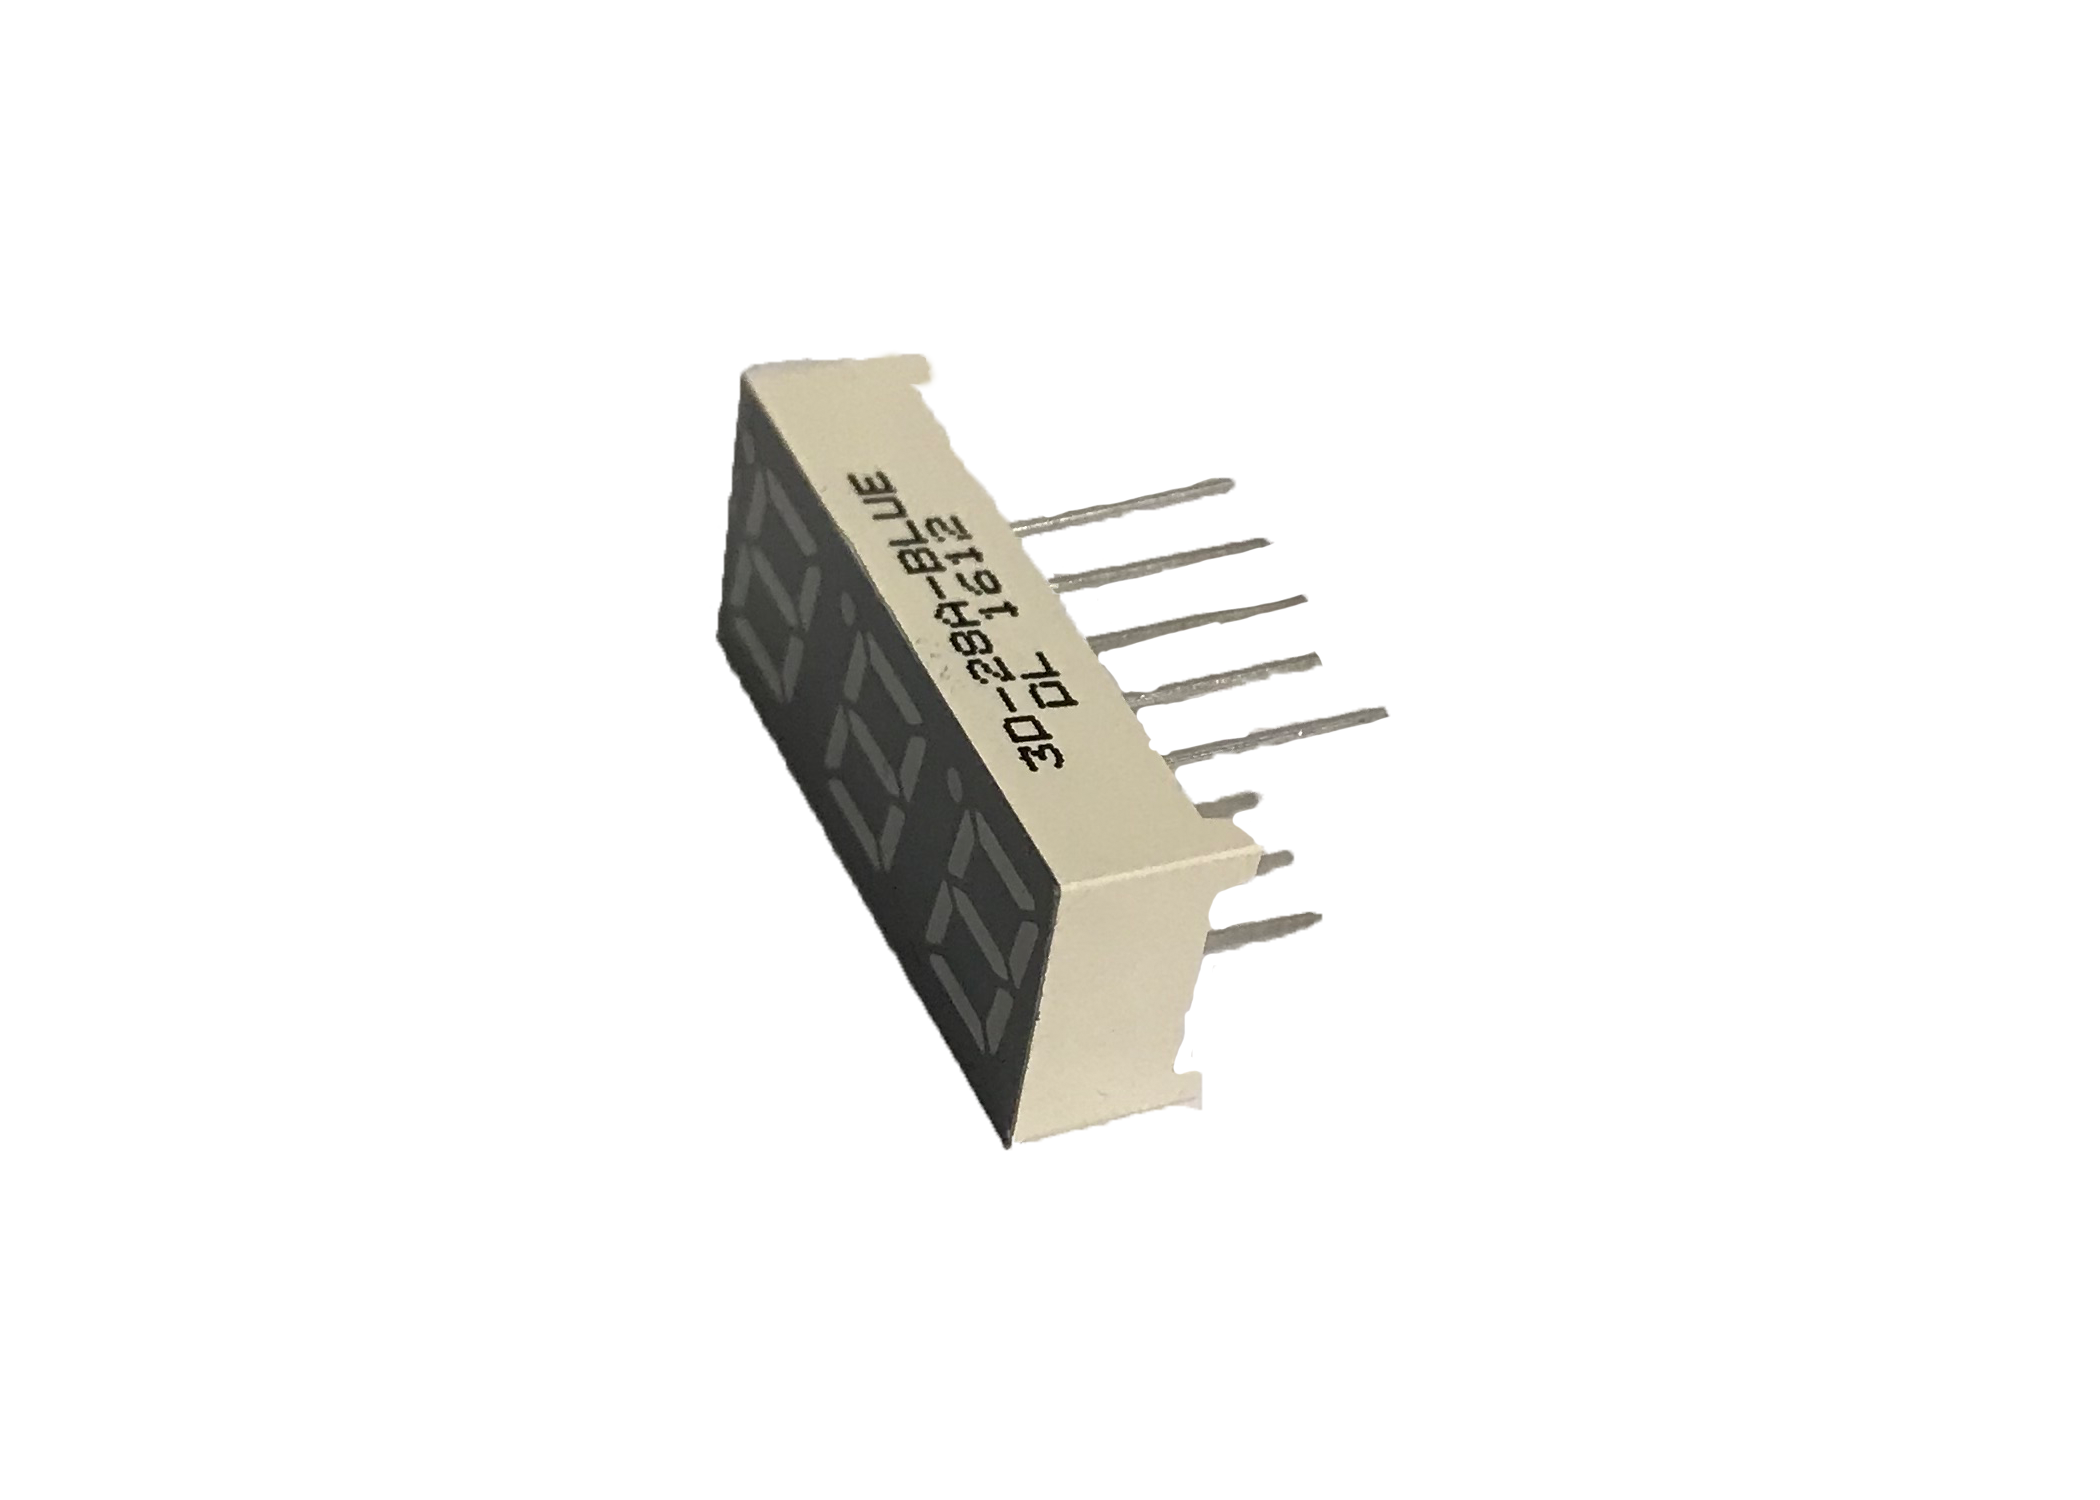 3D28A-BL - EKL 3 Element Frequency Counter For Magnum Radio